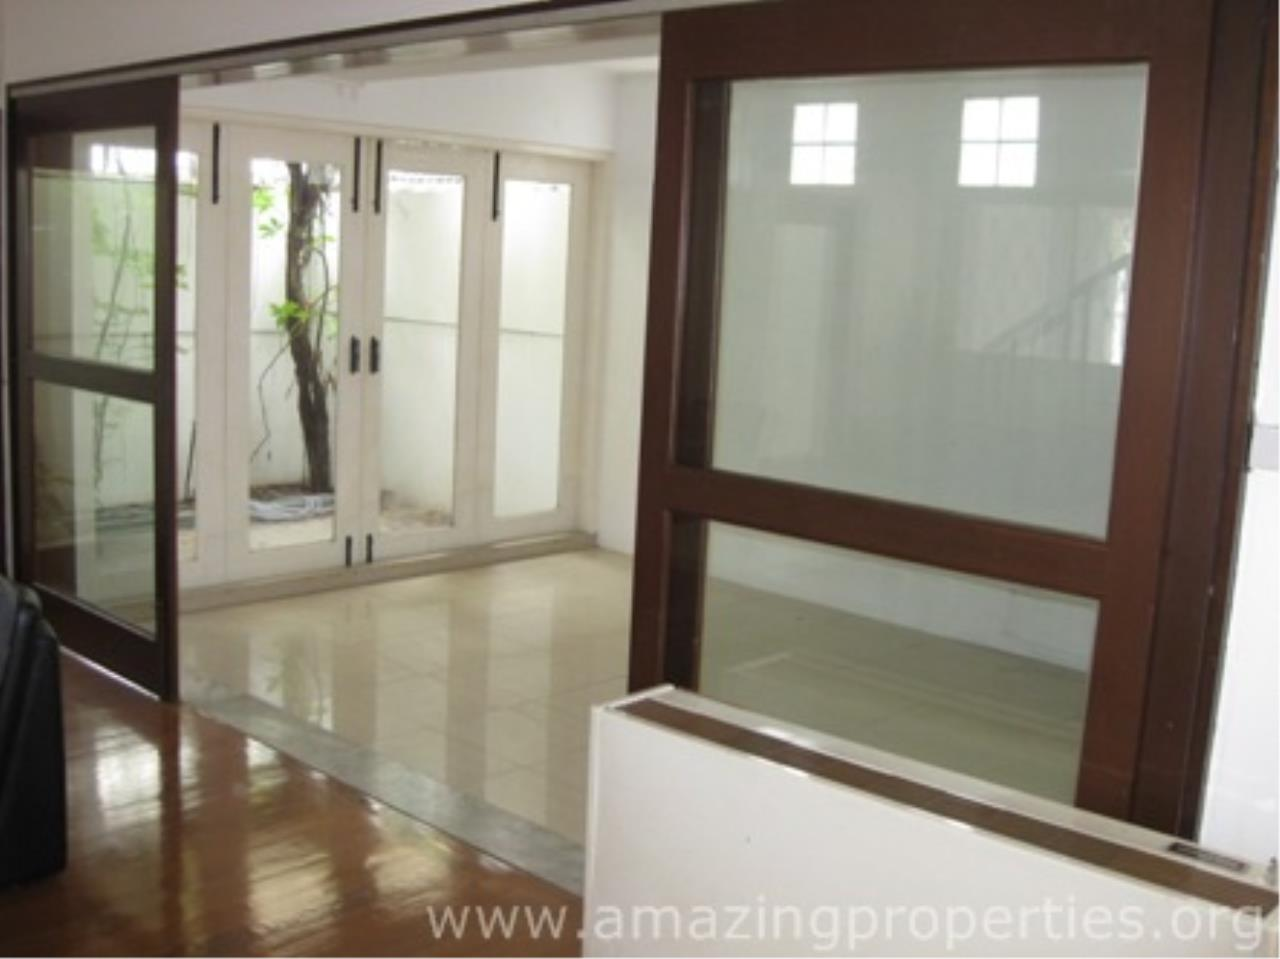 Amazing Properties Agency's 2 bedrooms House for rent 10